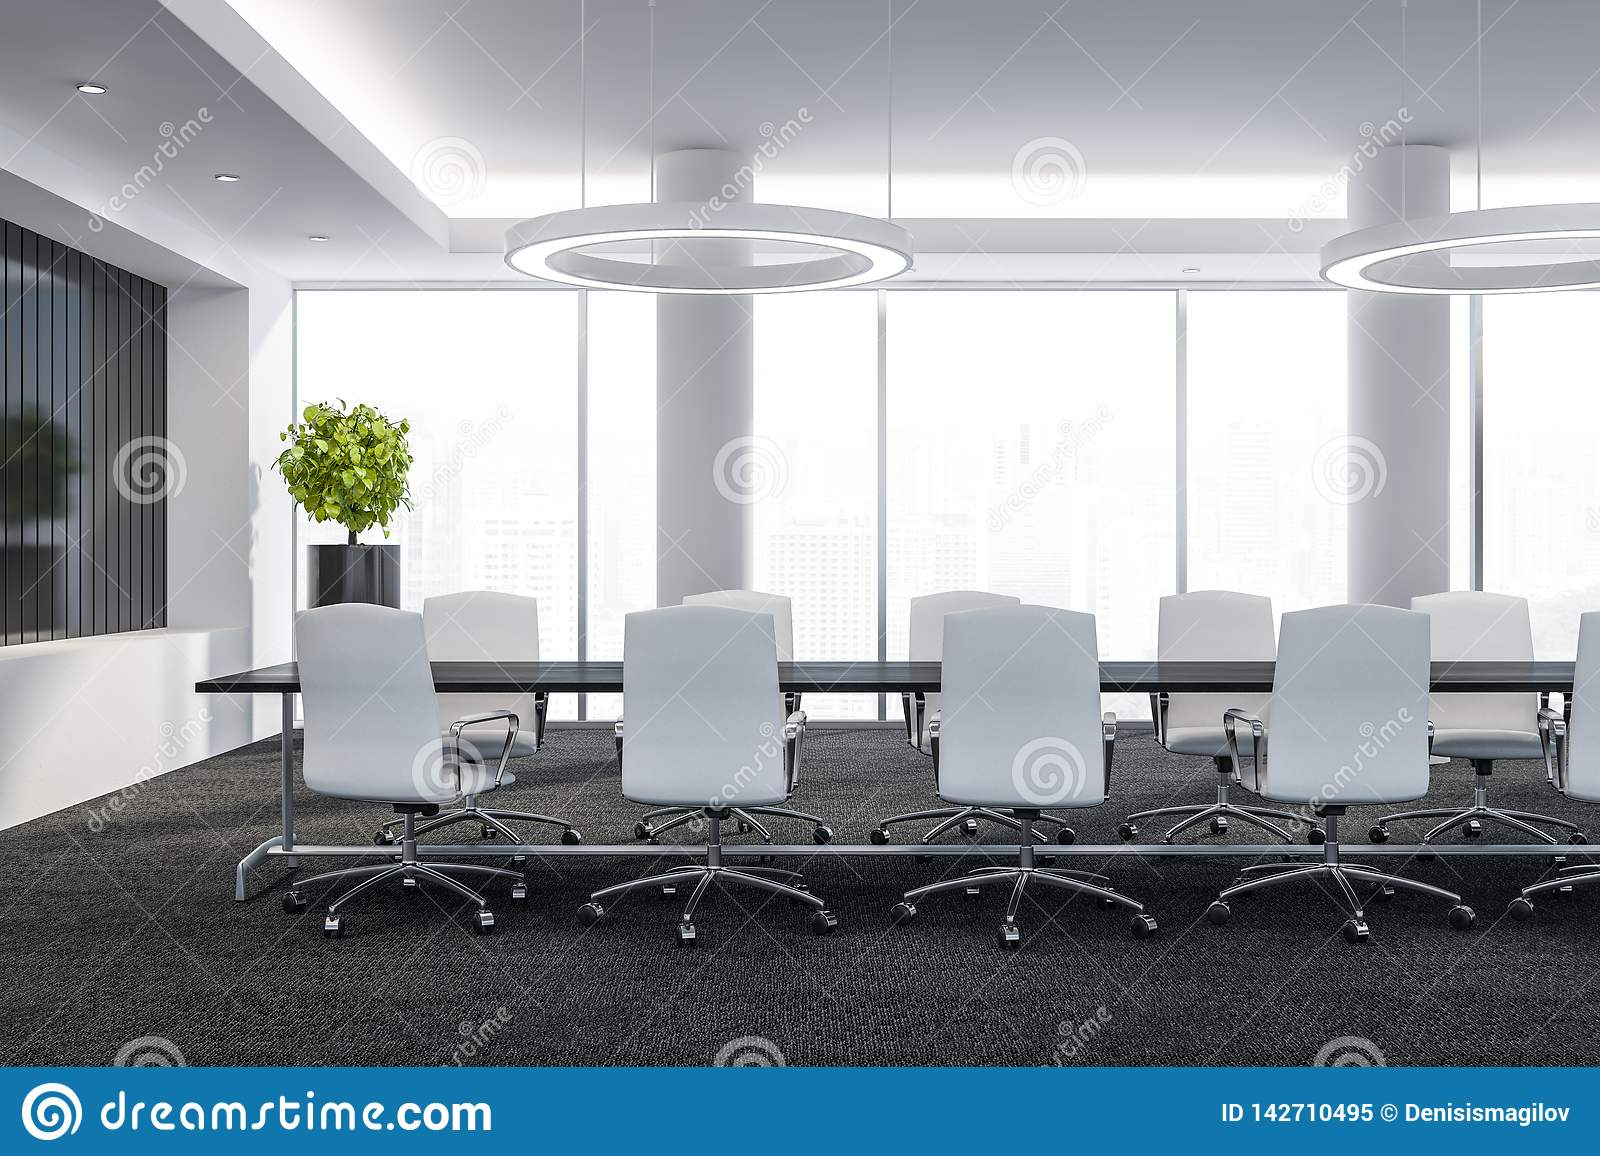 Amazing Conference Room With Table And Chairs Big Windows And City Squirreltailoven Fun Painted Chair Ideas Images Squirreltailovenorg